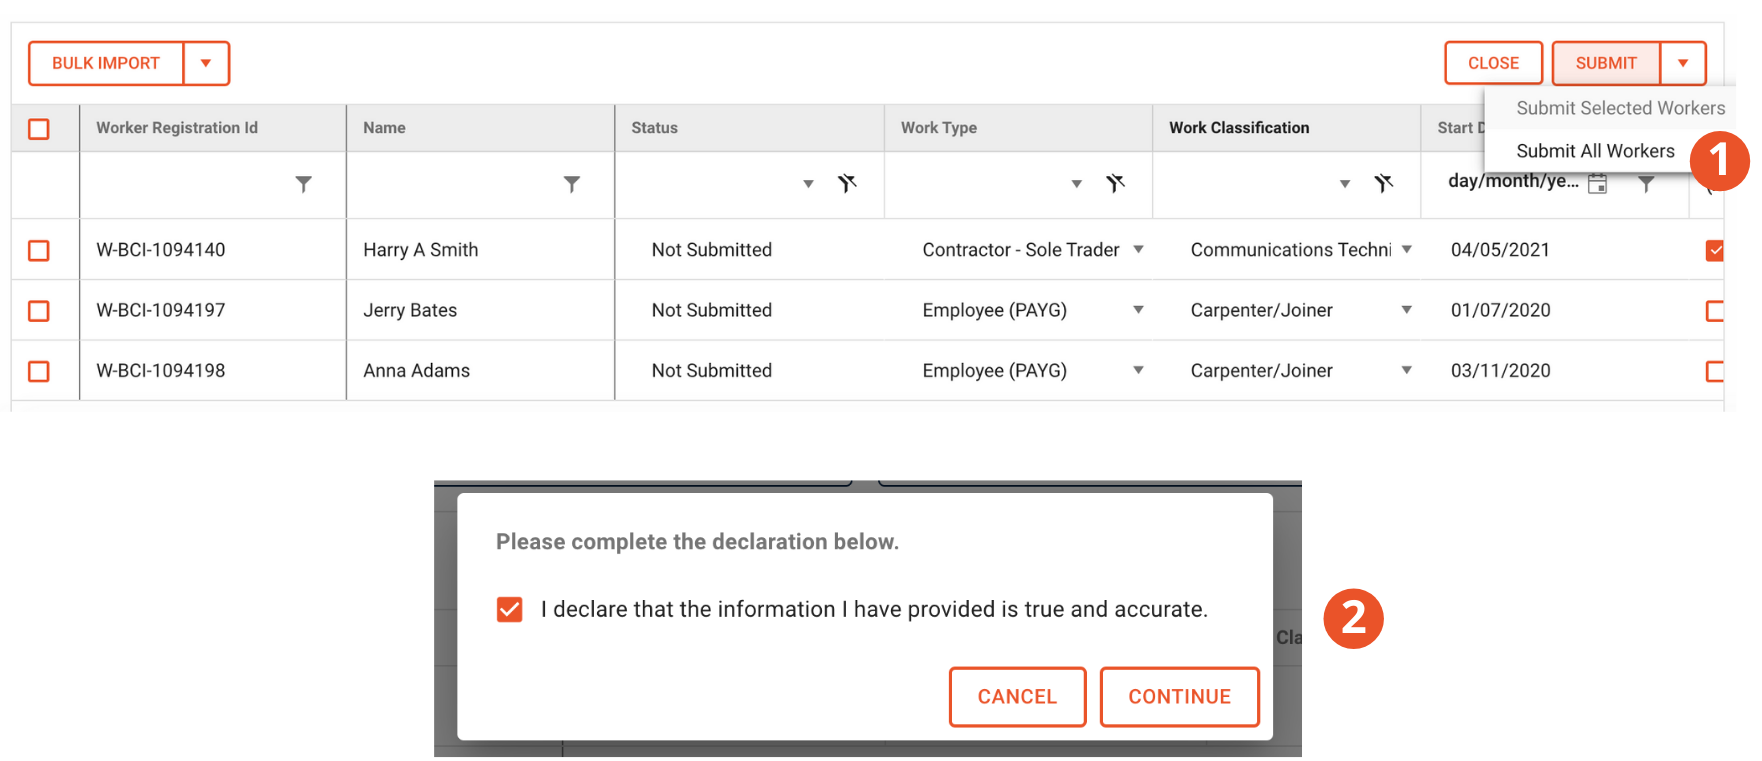 Select submit all workers to submit your return